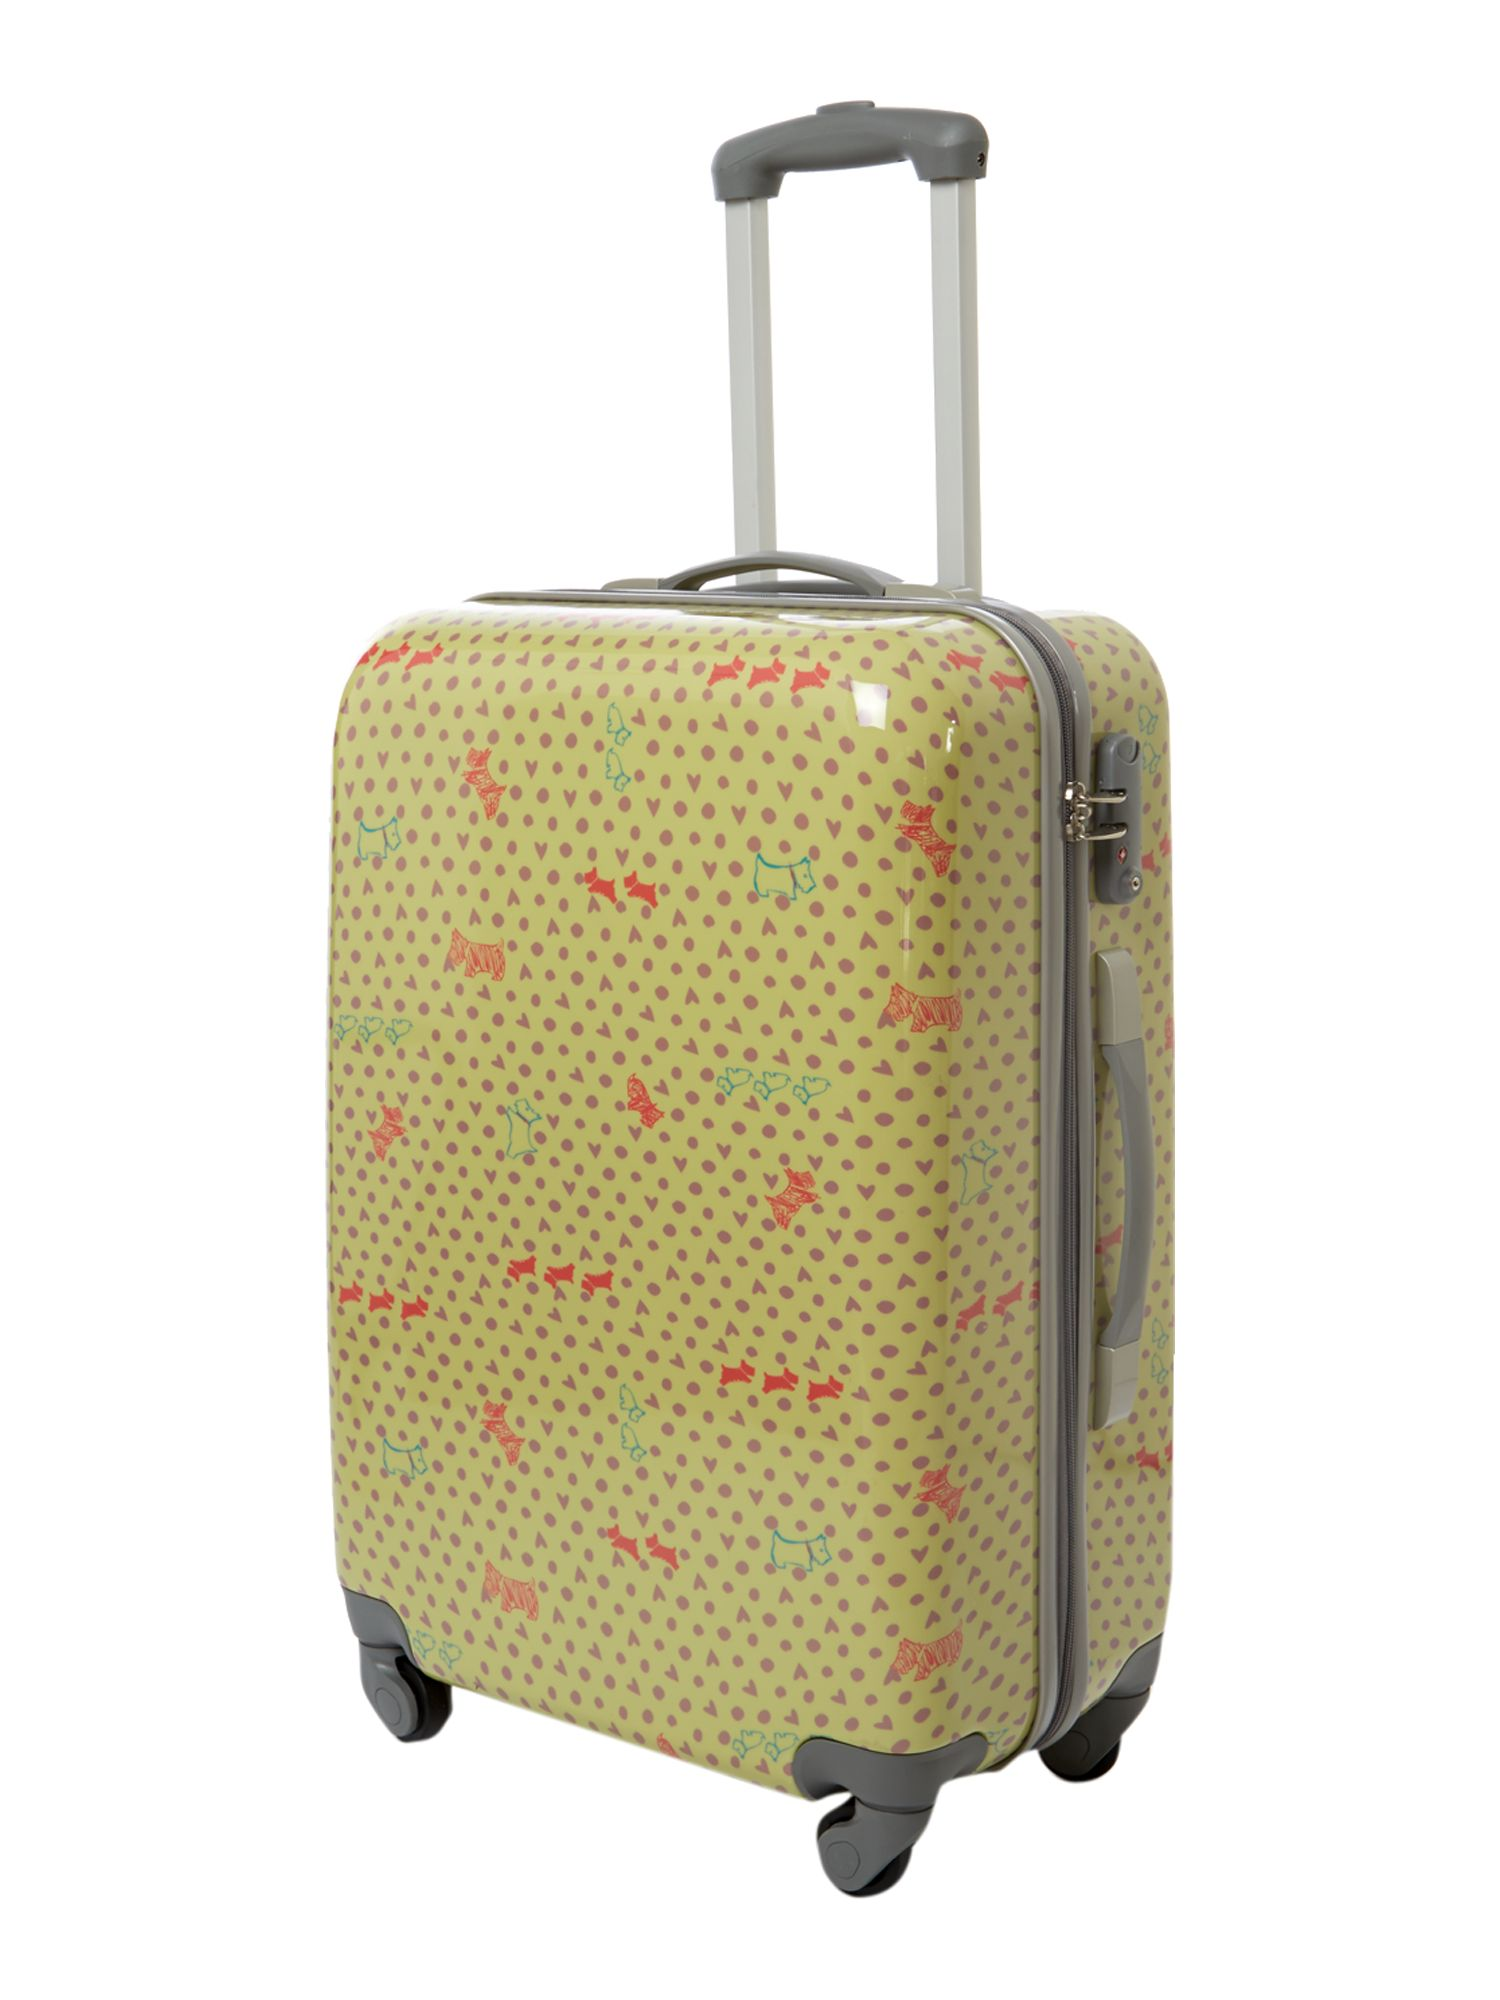 Hibbert pistachio 4 wheel hard large trolley case